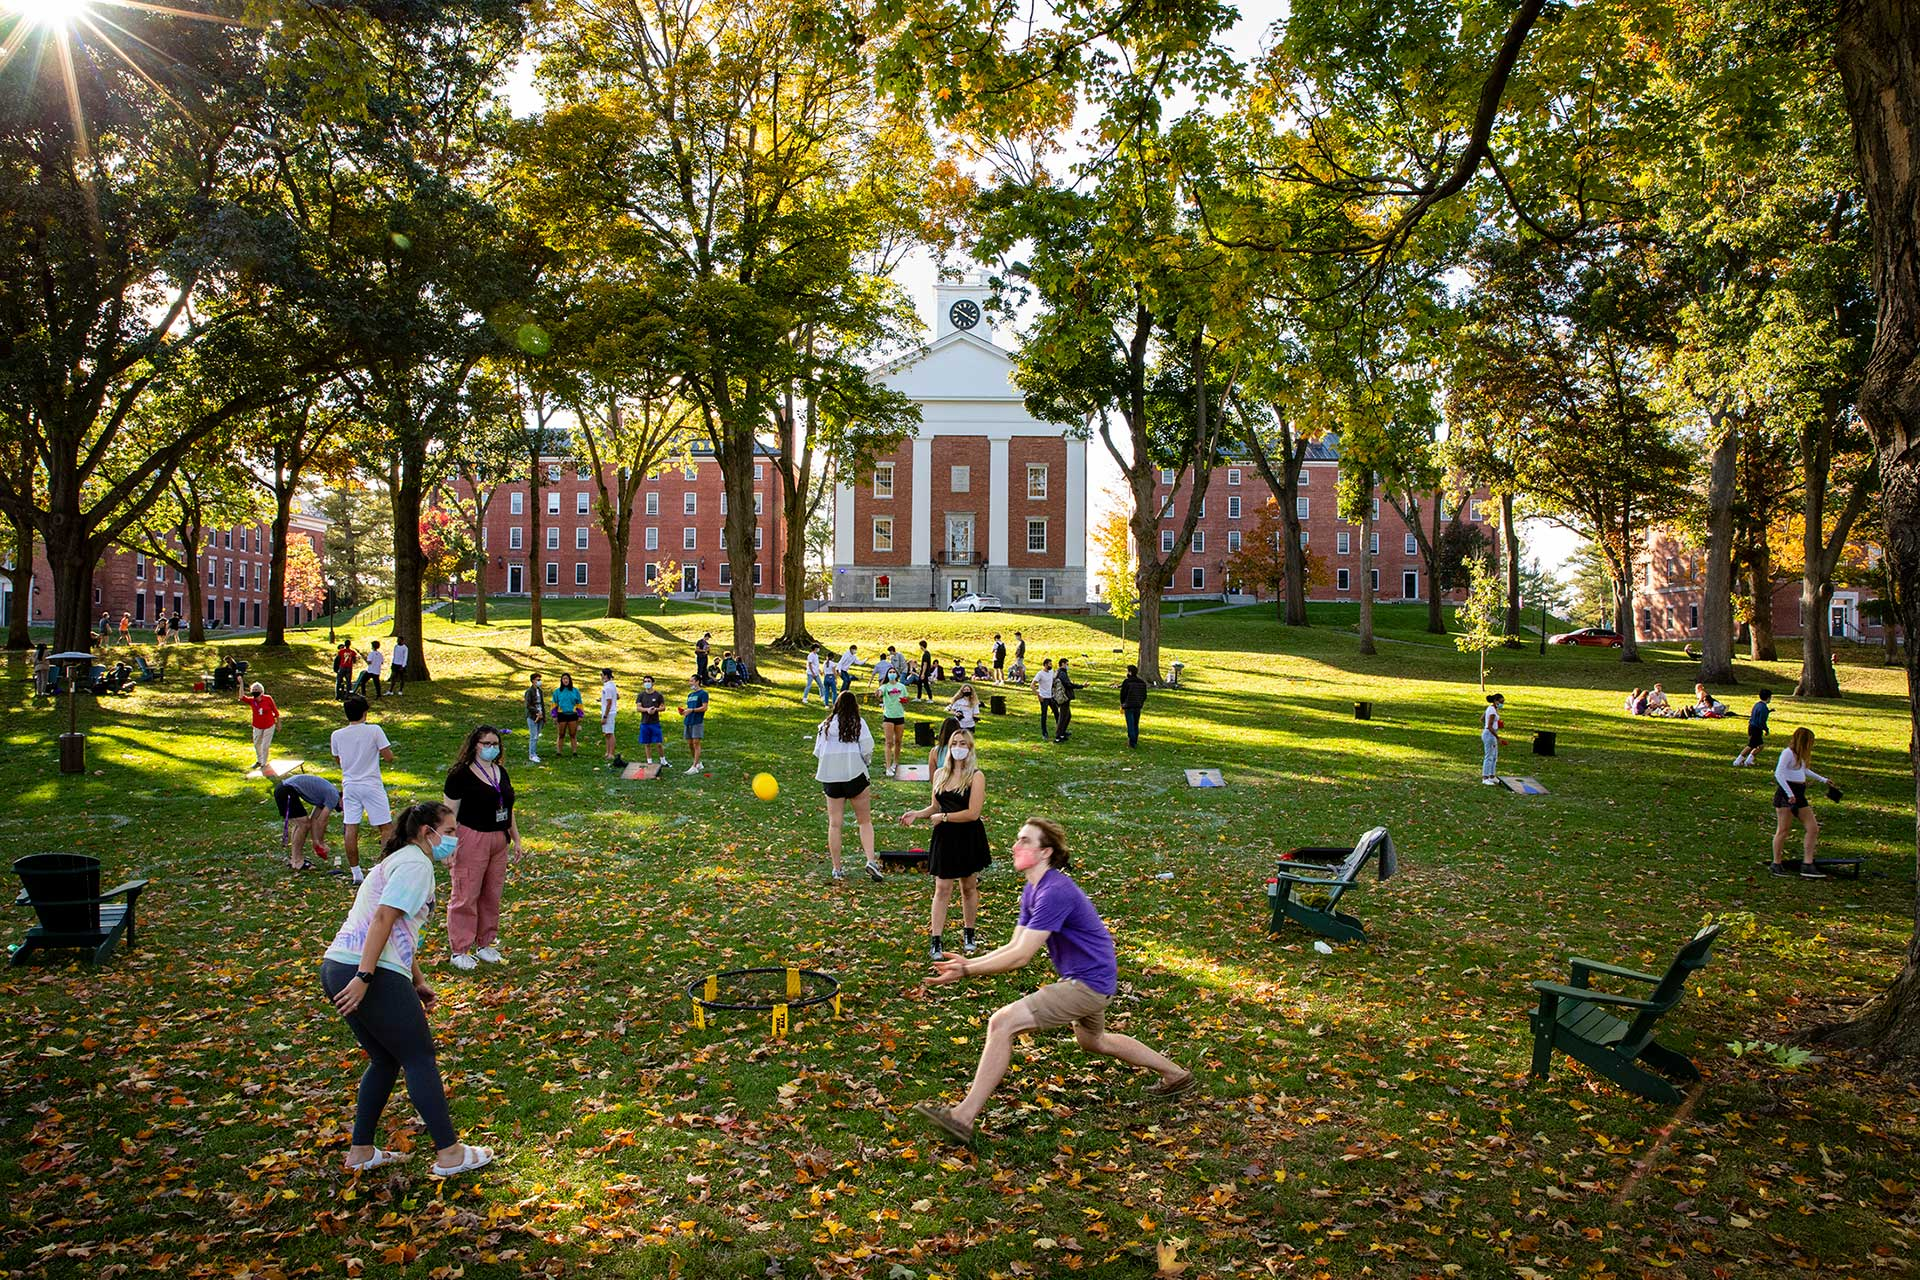 Students enjoying outdoor activities on the main quad of amherst college